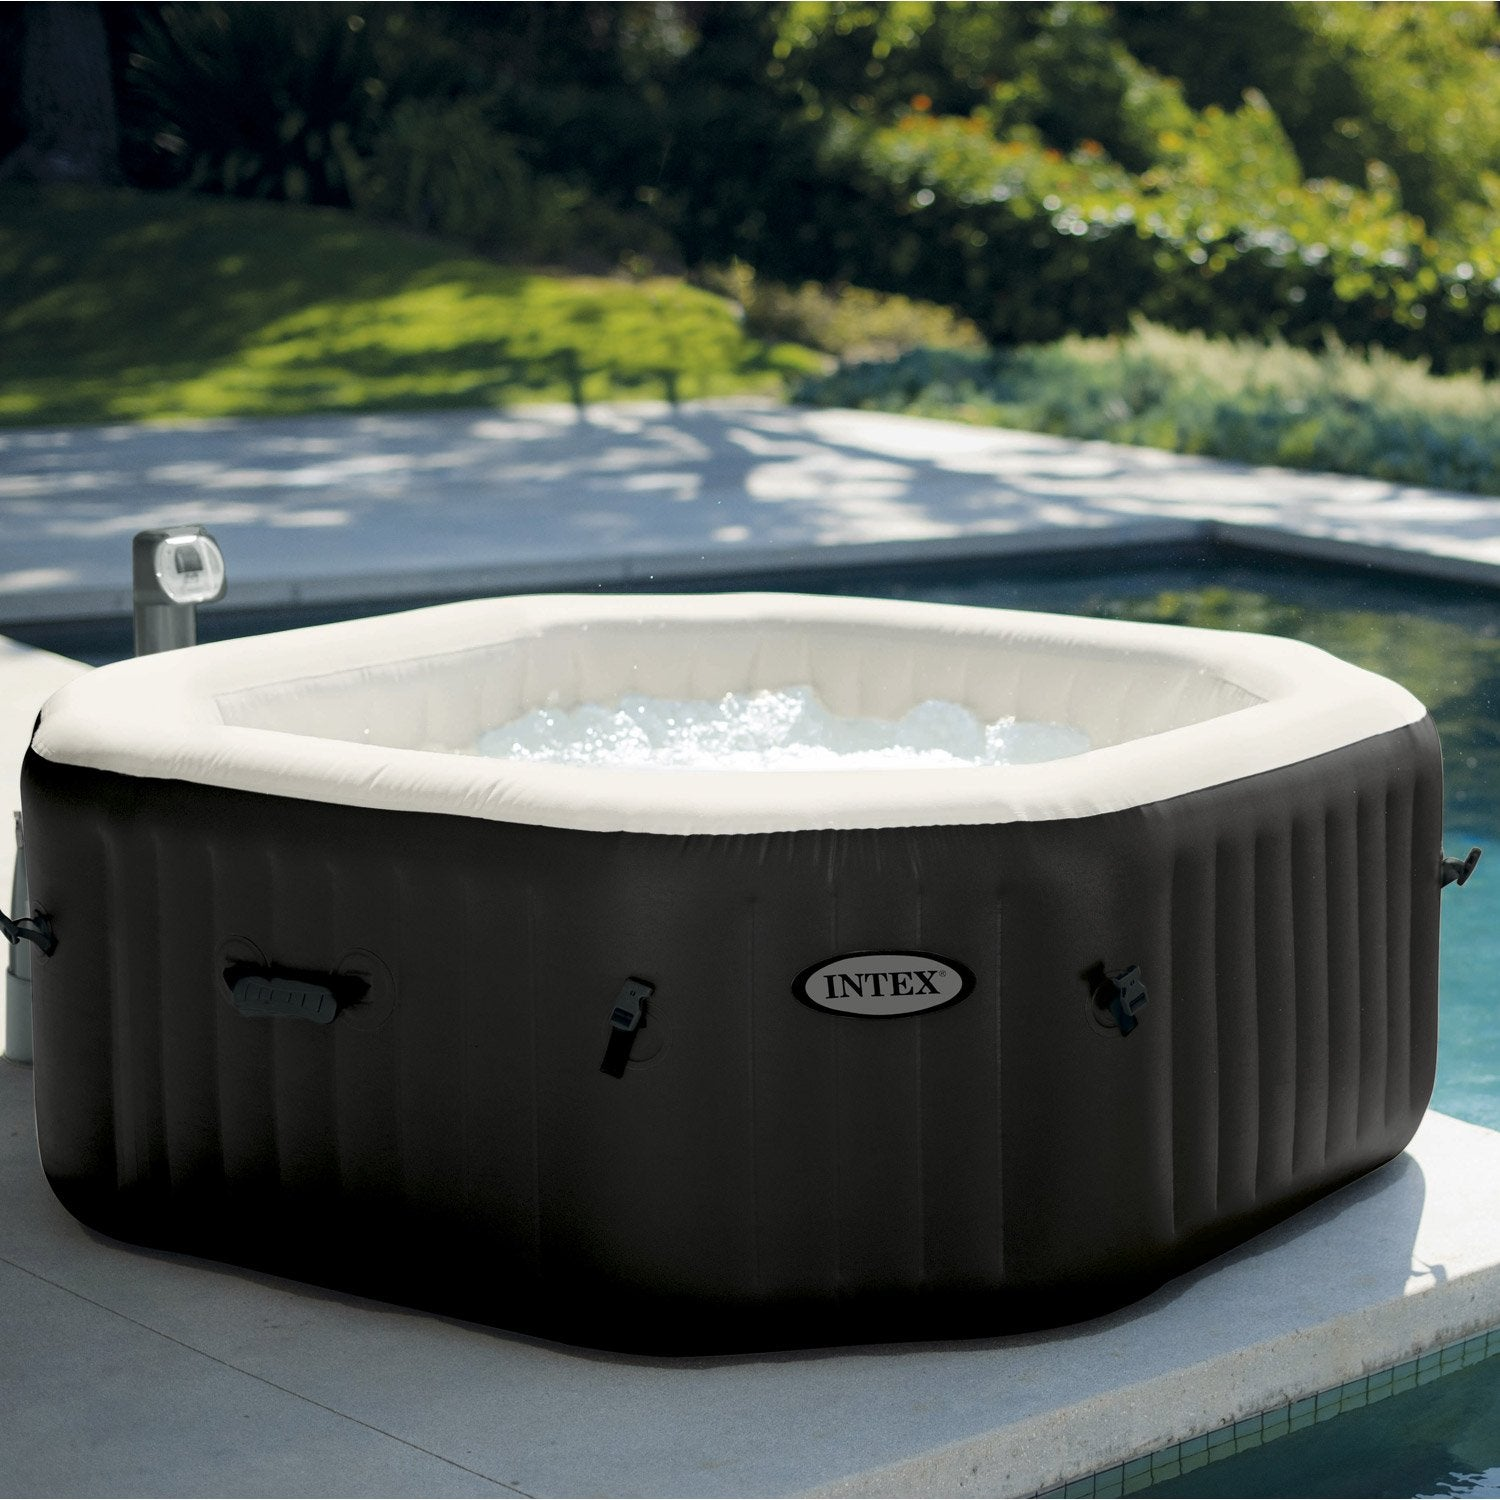 Spa gonflable octogonale intex 4 places assises leroy merlin - Spa exterieur 4 places ...